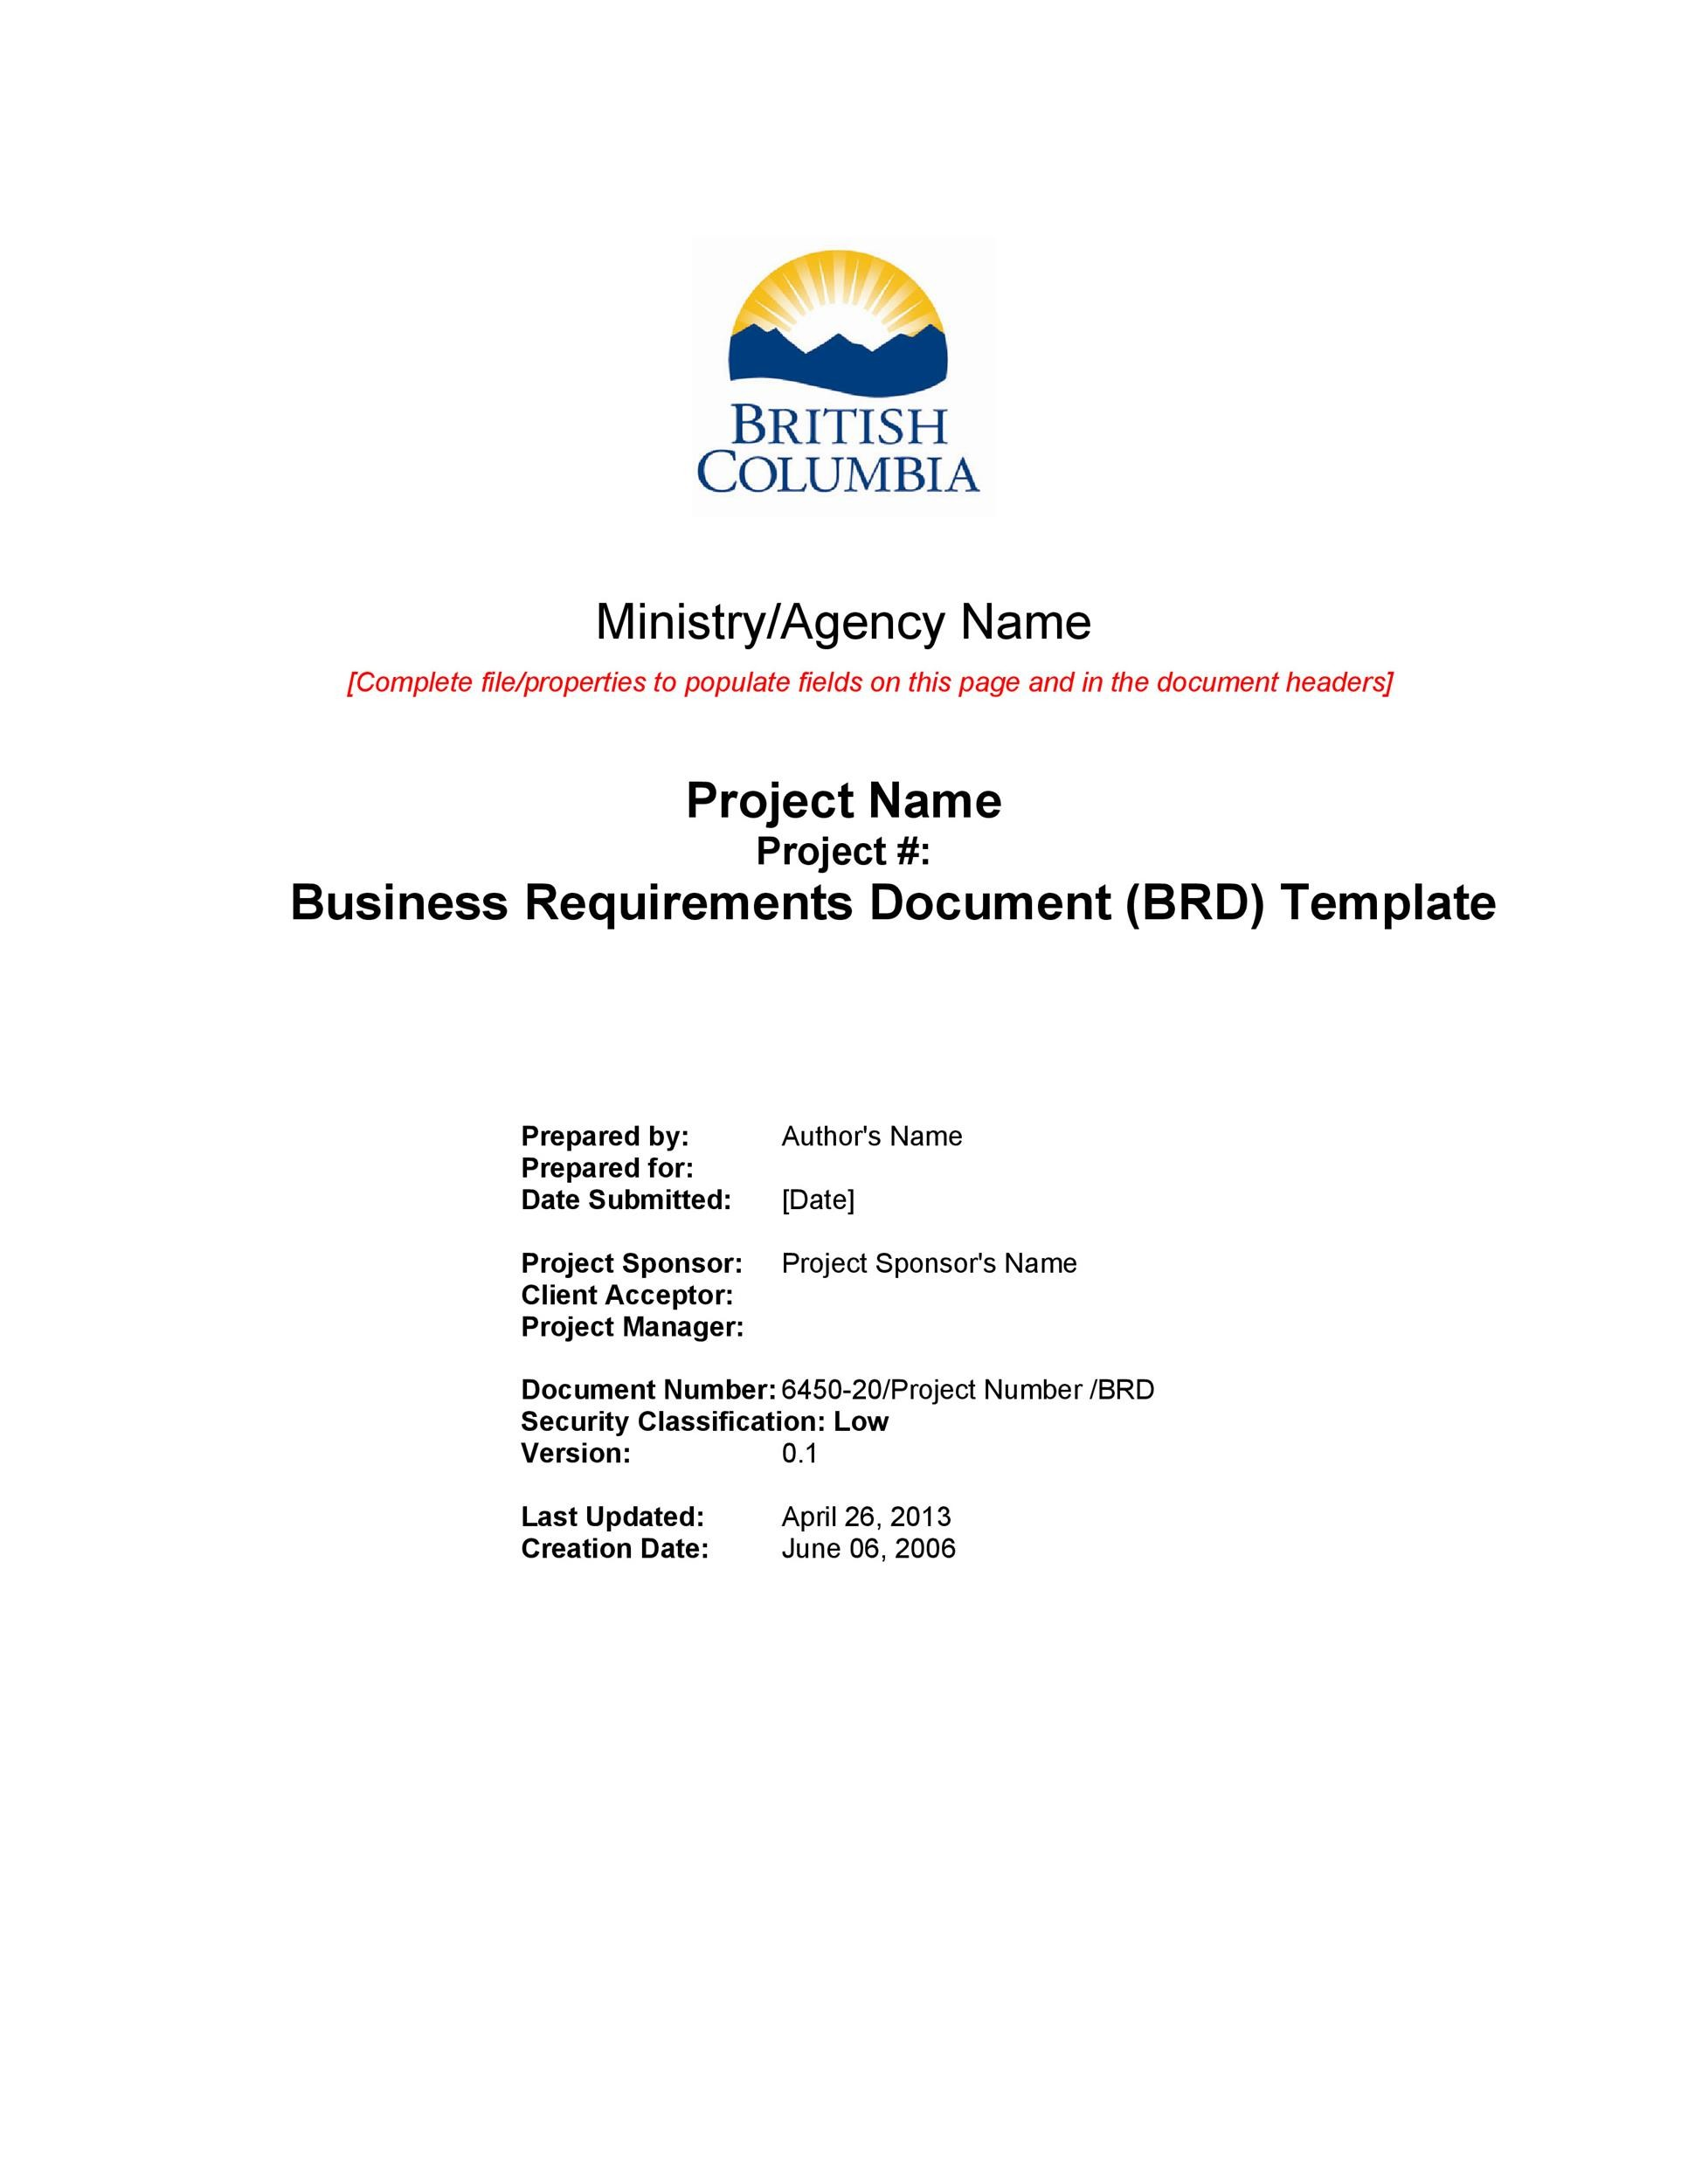 Free business requirements document template 02